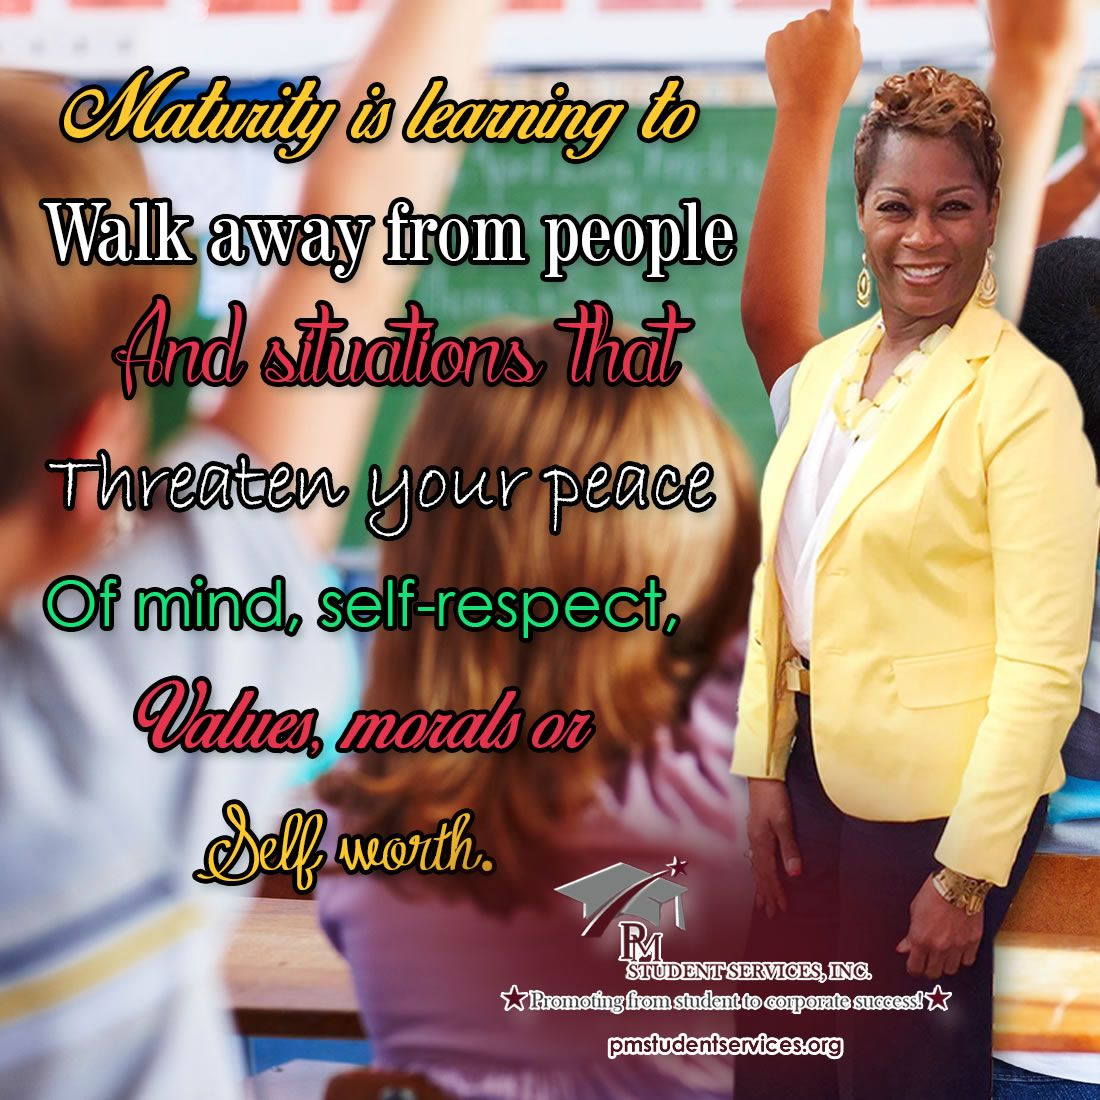 Walk away threaten your peace of mind, self-respect, values, morals or self worth.